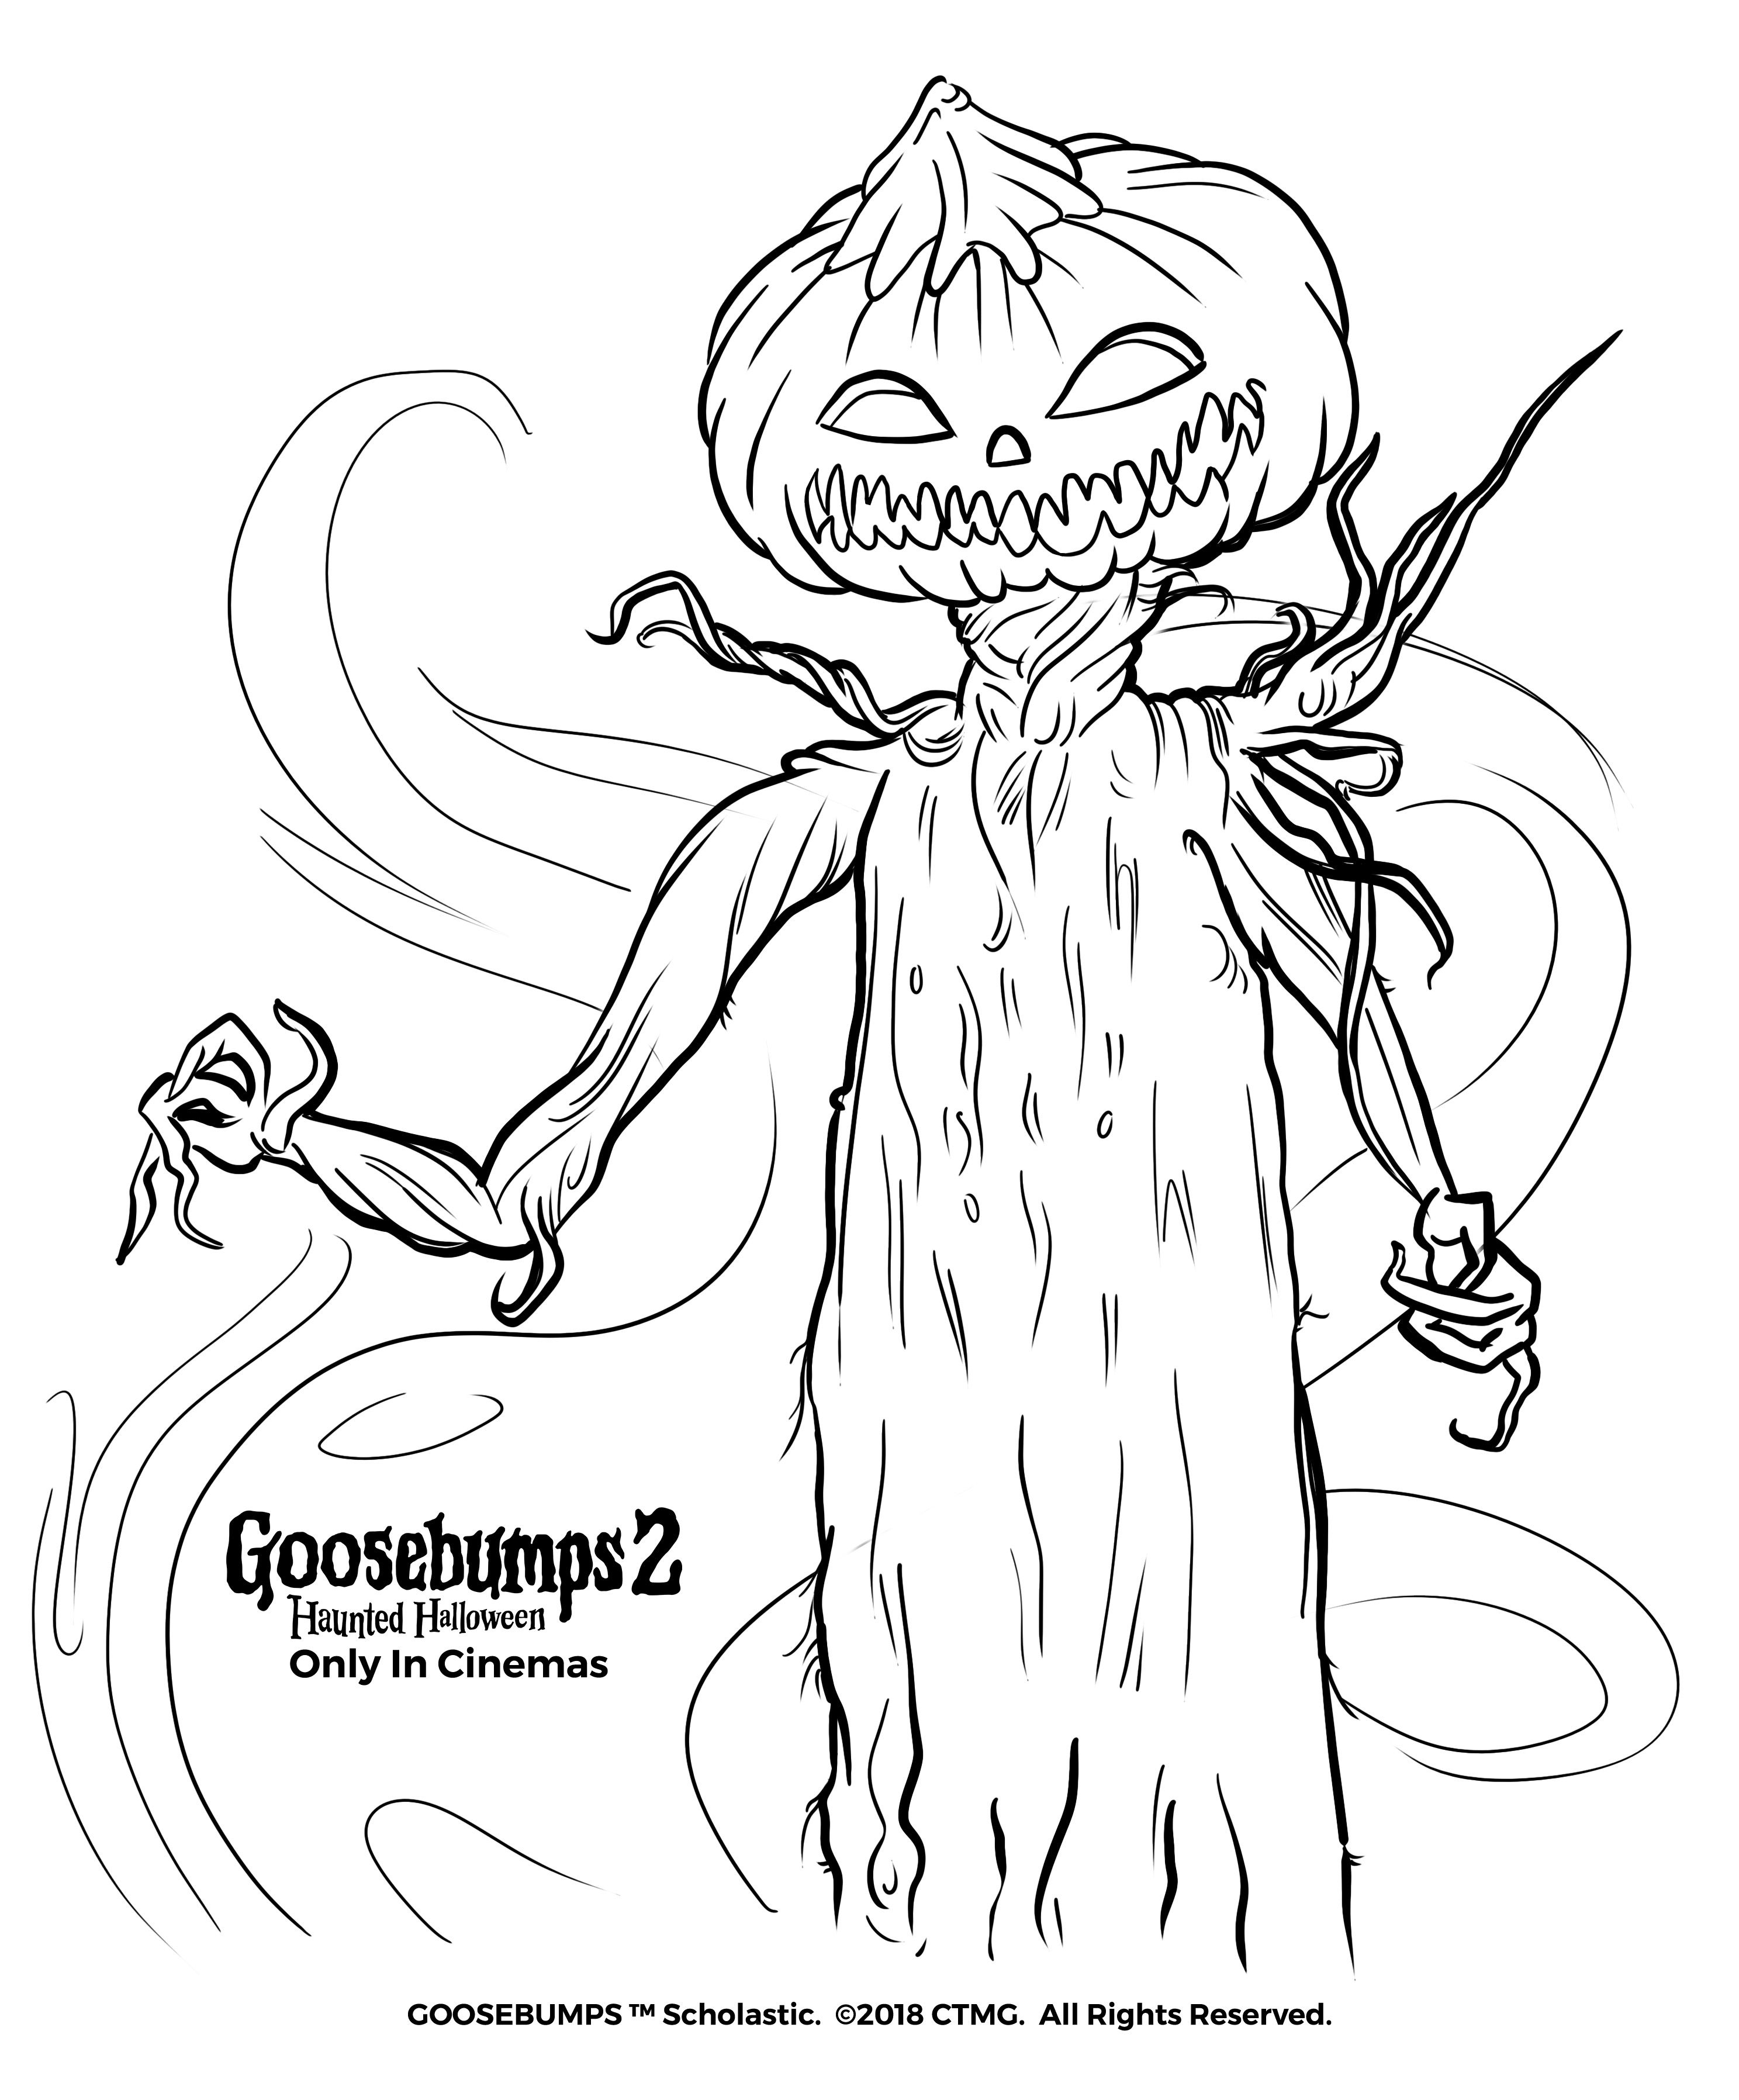 goosebumps coloring sheets be careful with what you create goosebumps2movie sheets coloring goosebumps